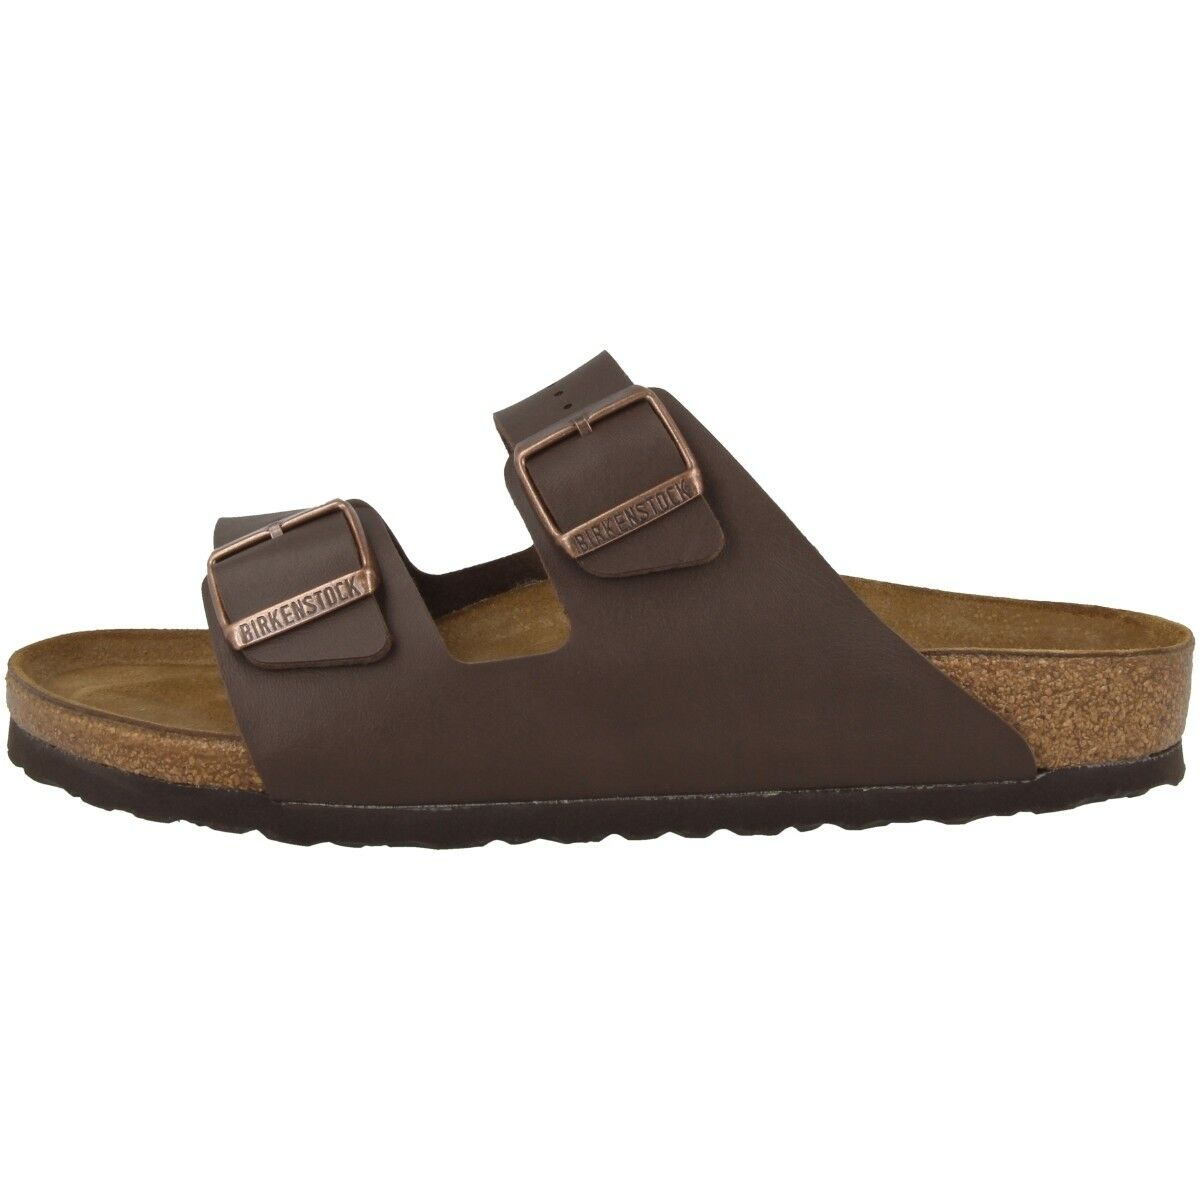 Birkenstock arizona Birko-flor zapatos dark brown 051701 ancho sandalias normal